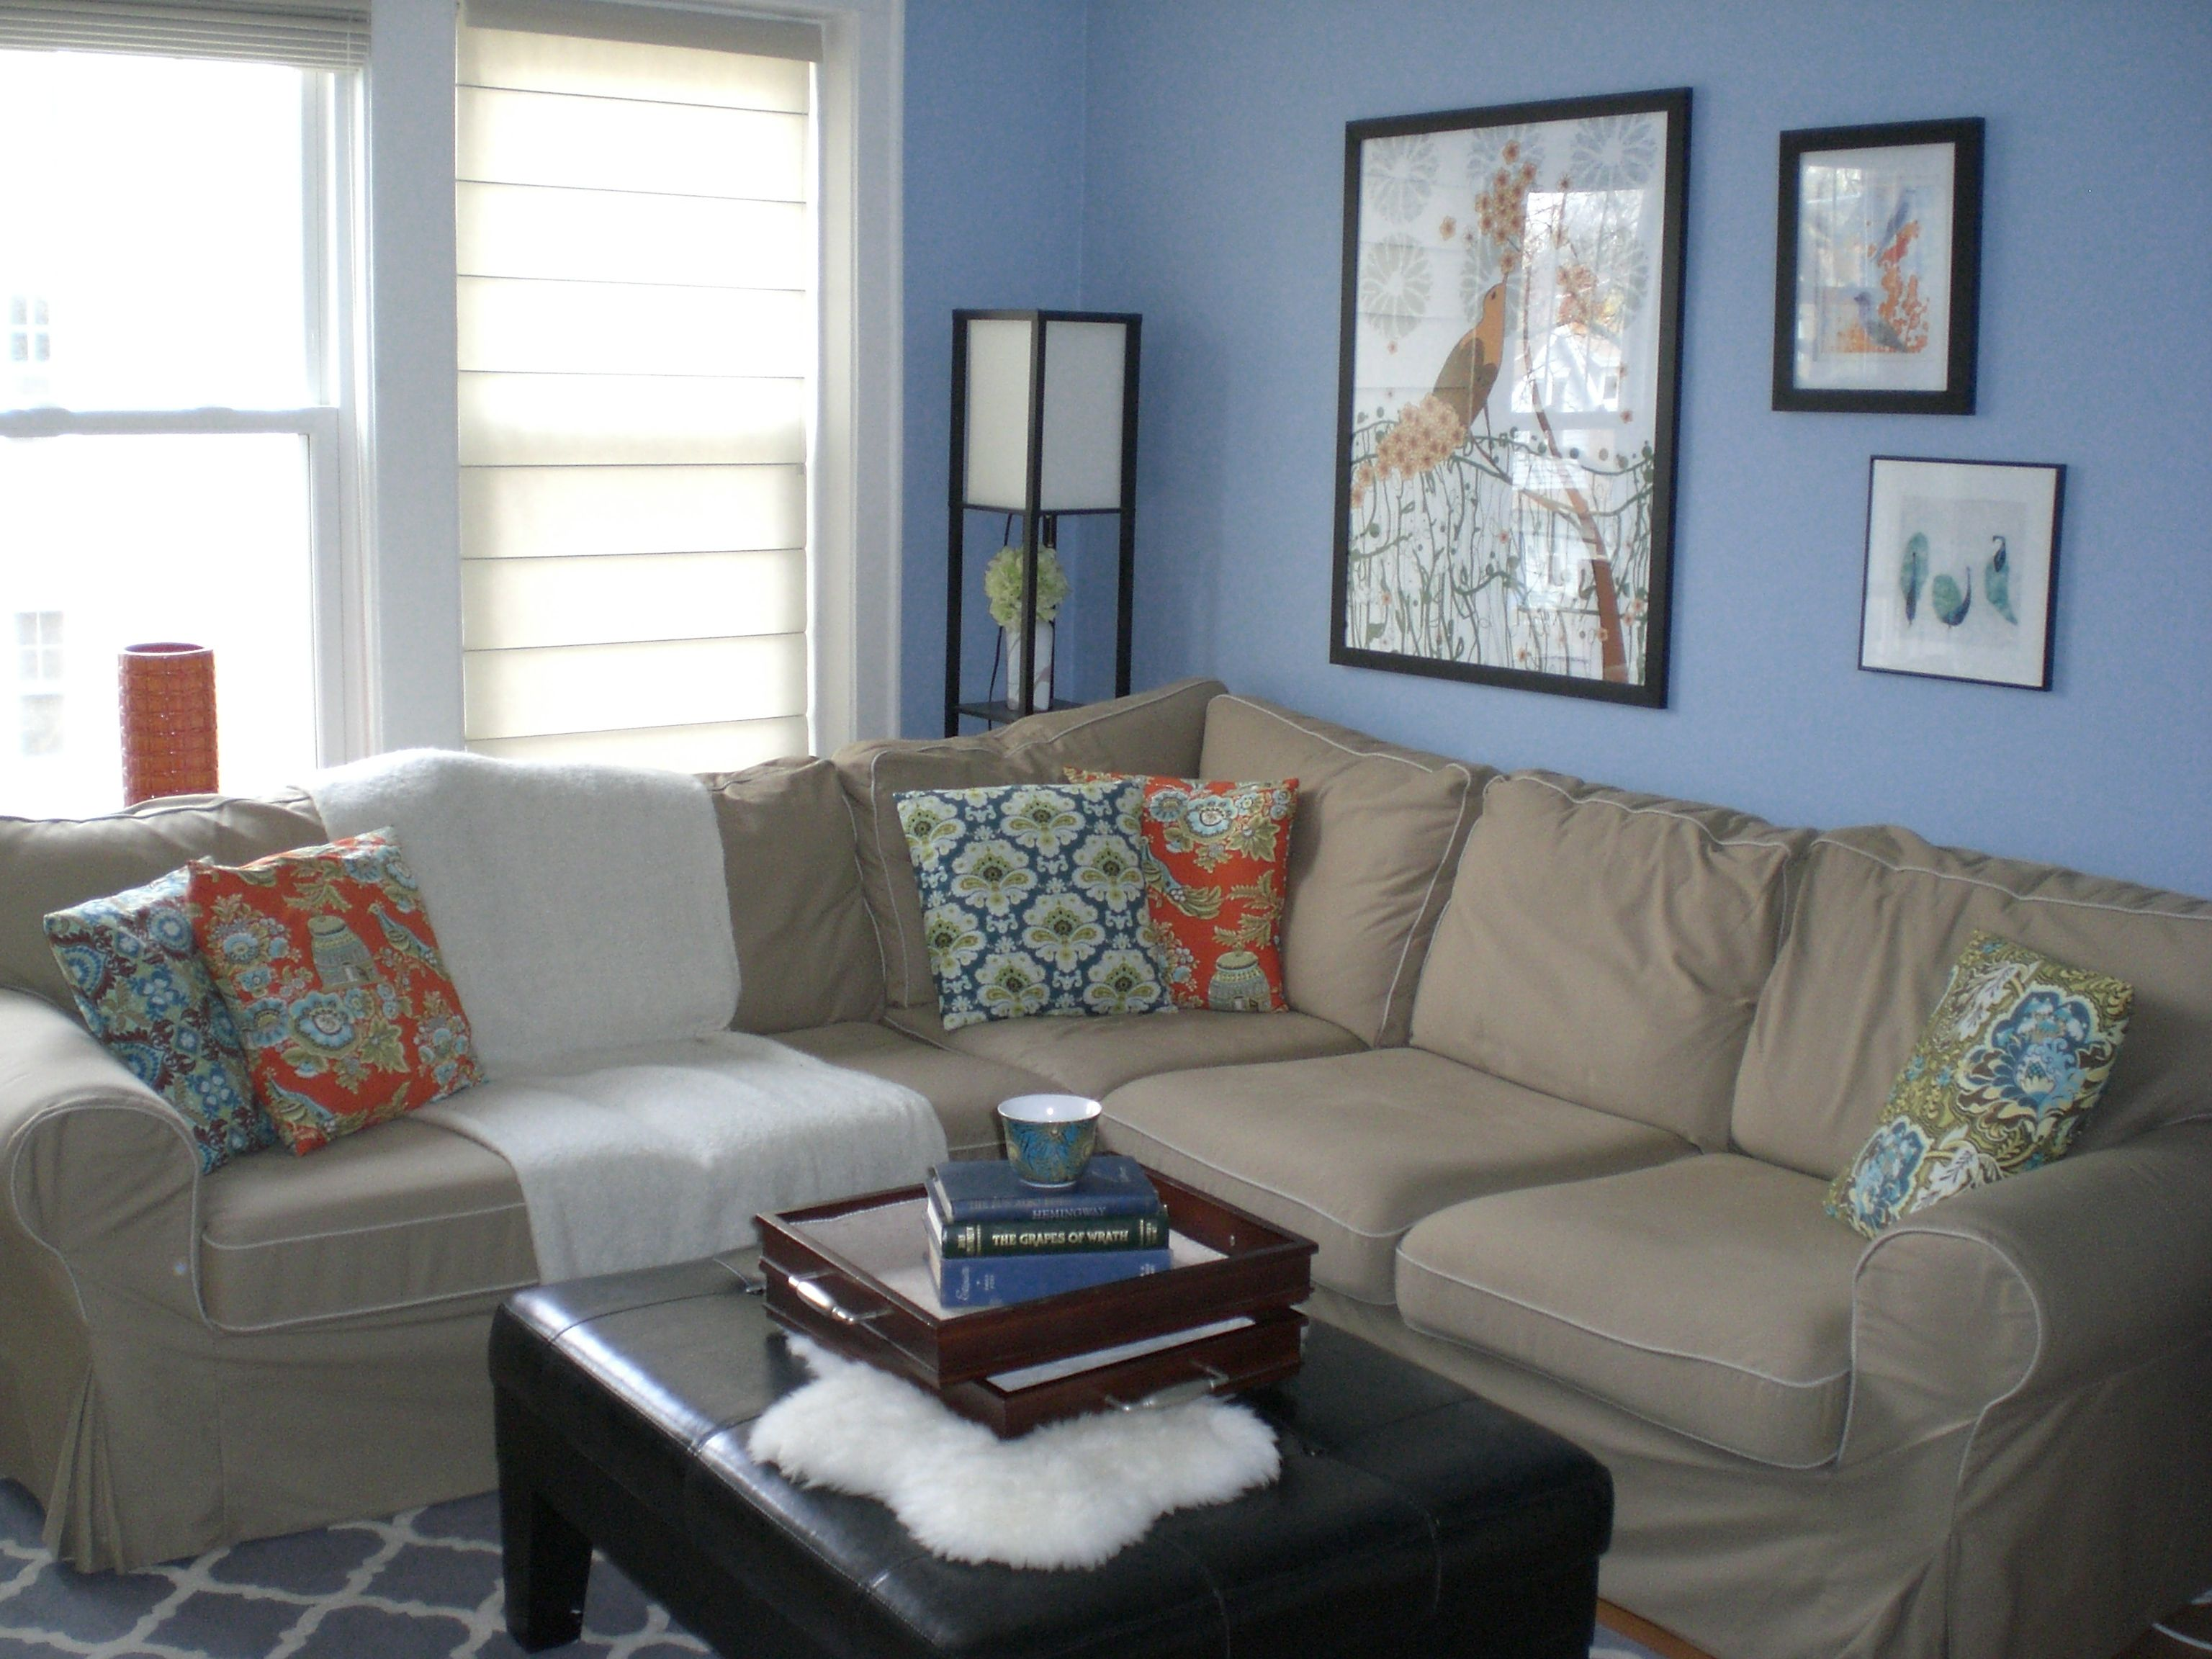 Best Light Blue Paint Colors For Living Room Xrkotdh Living 400 x 300